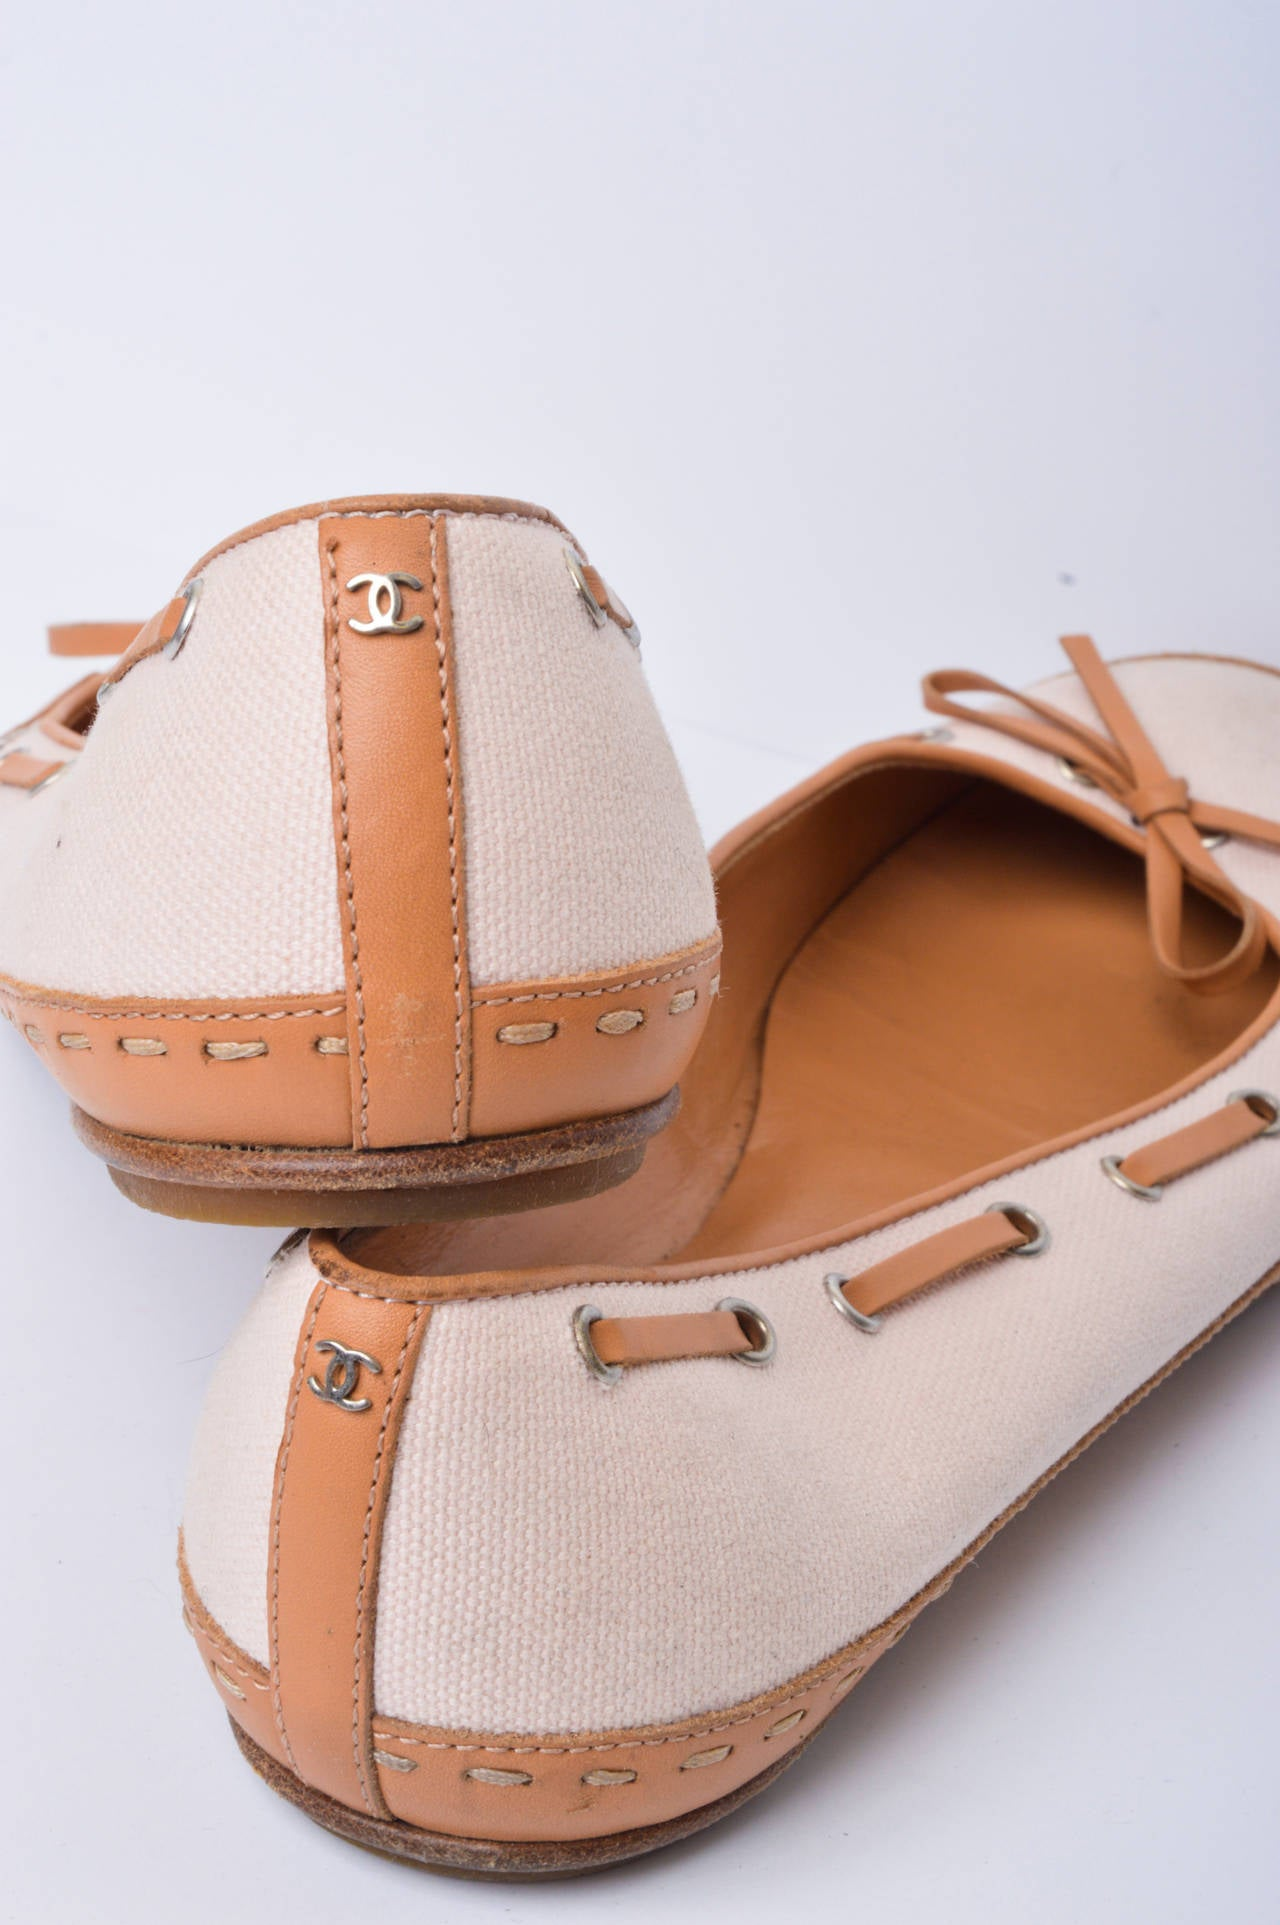 Orange Chanel Pink & Tan Canvas & Leather Ballet Flats Size 37 For Sale